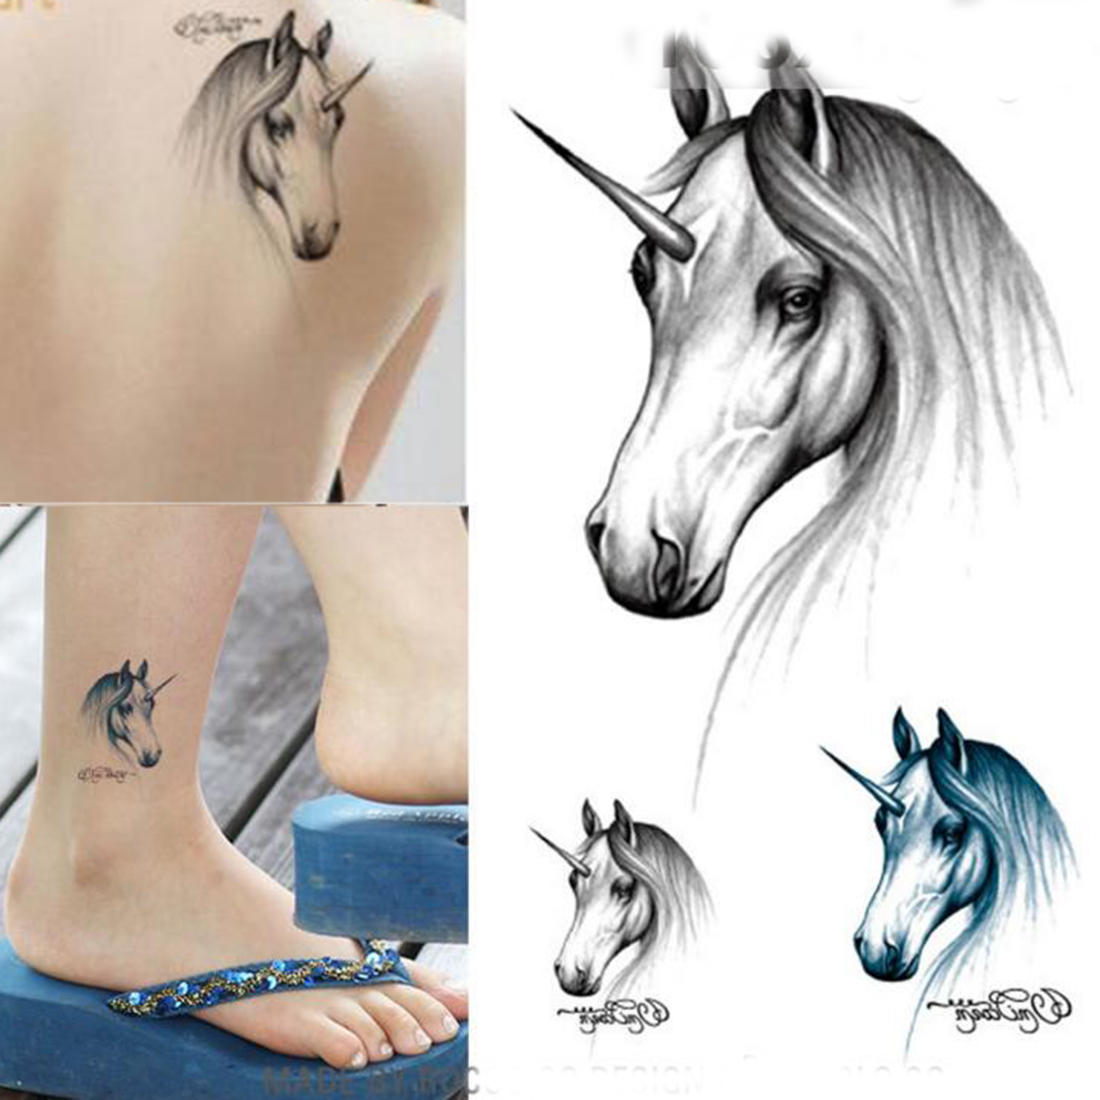 Fashion Temporary 3D Waterproof Tattoo Sticker Body Art Water Transfer Fake Tattoo Unicorn Horse For Halloween Hot Sale(China (Mainland))